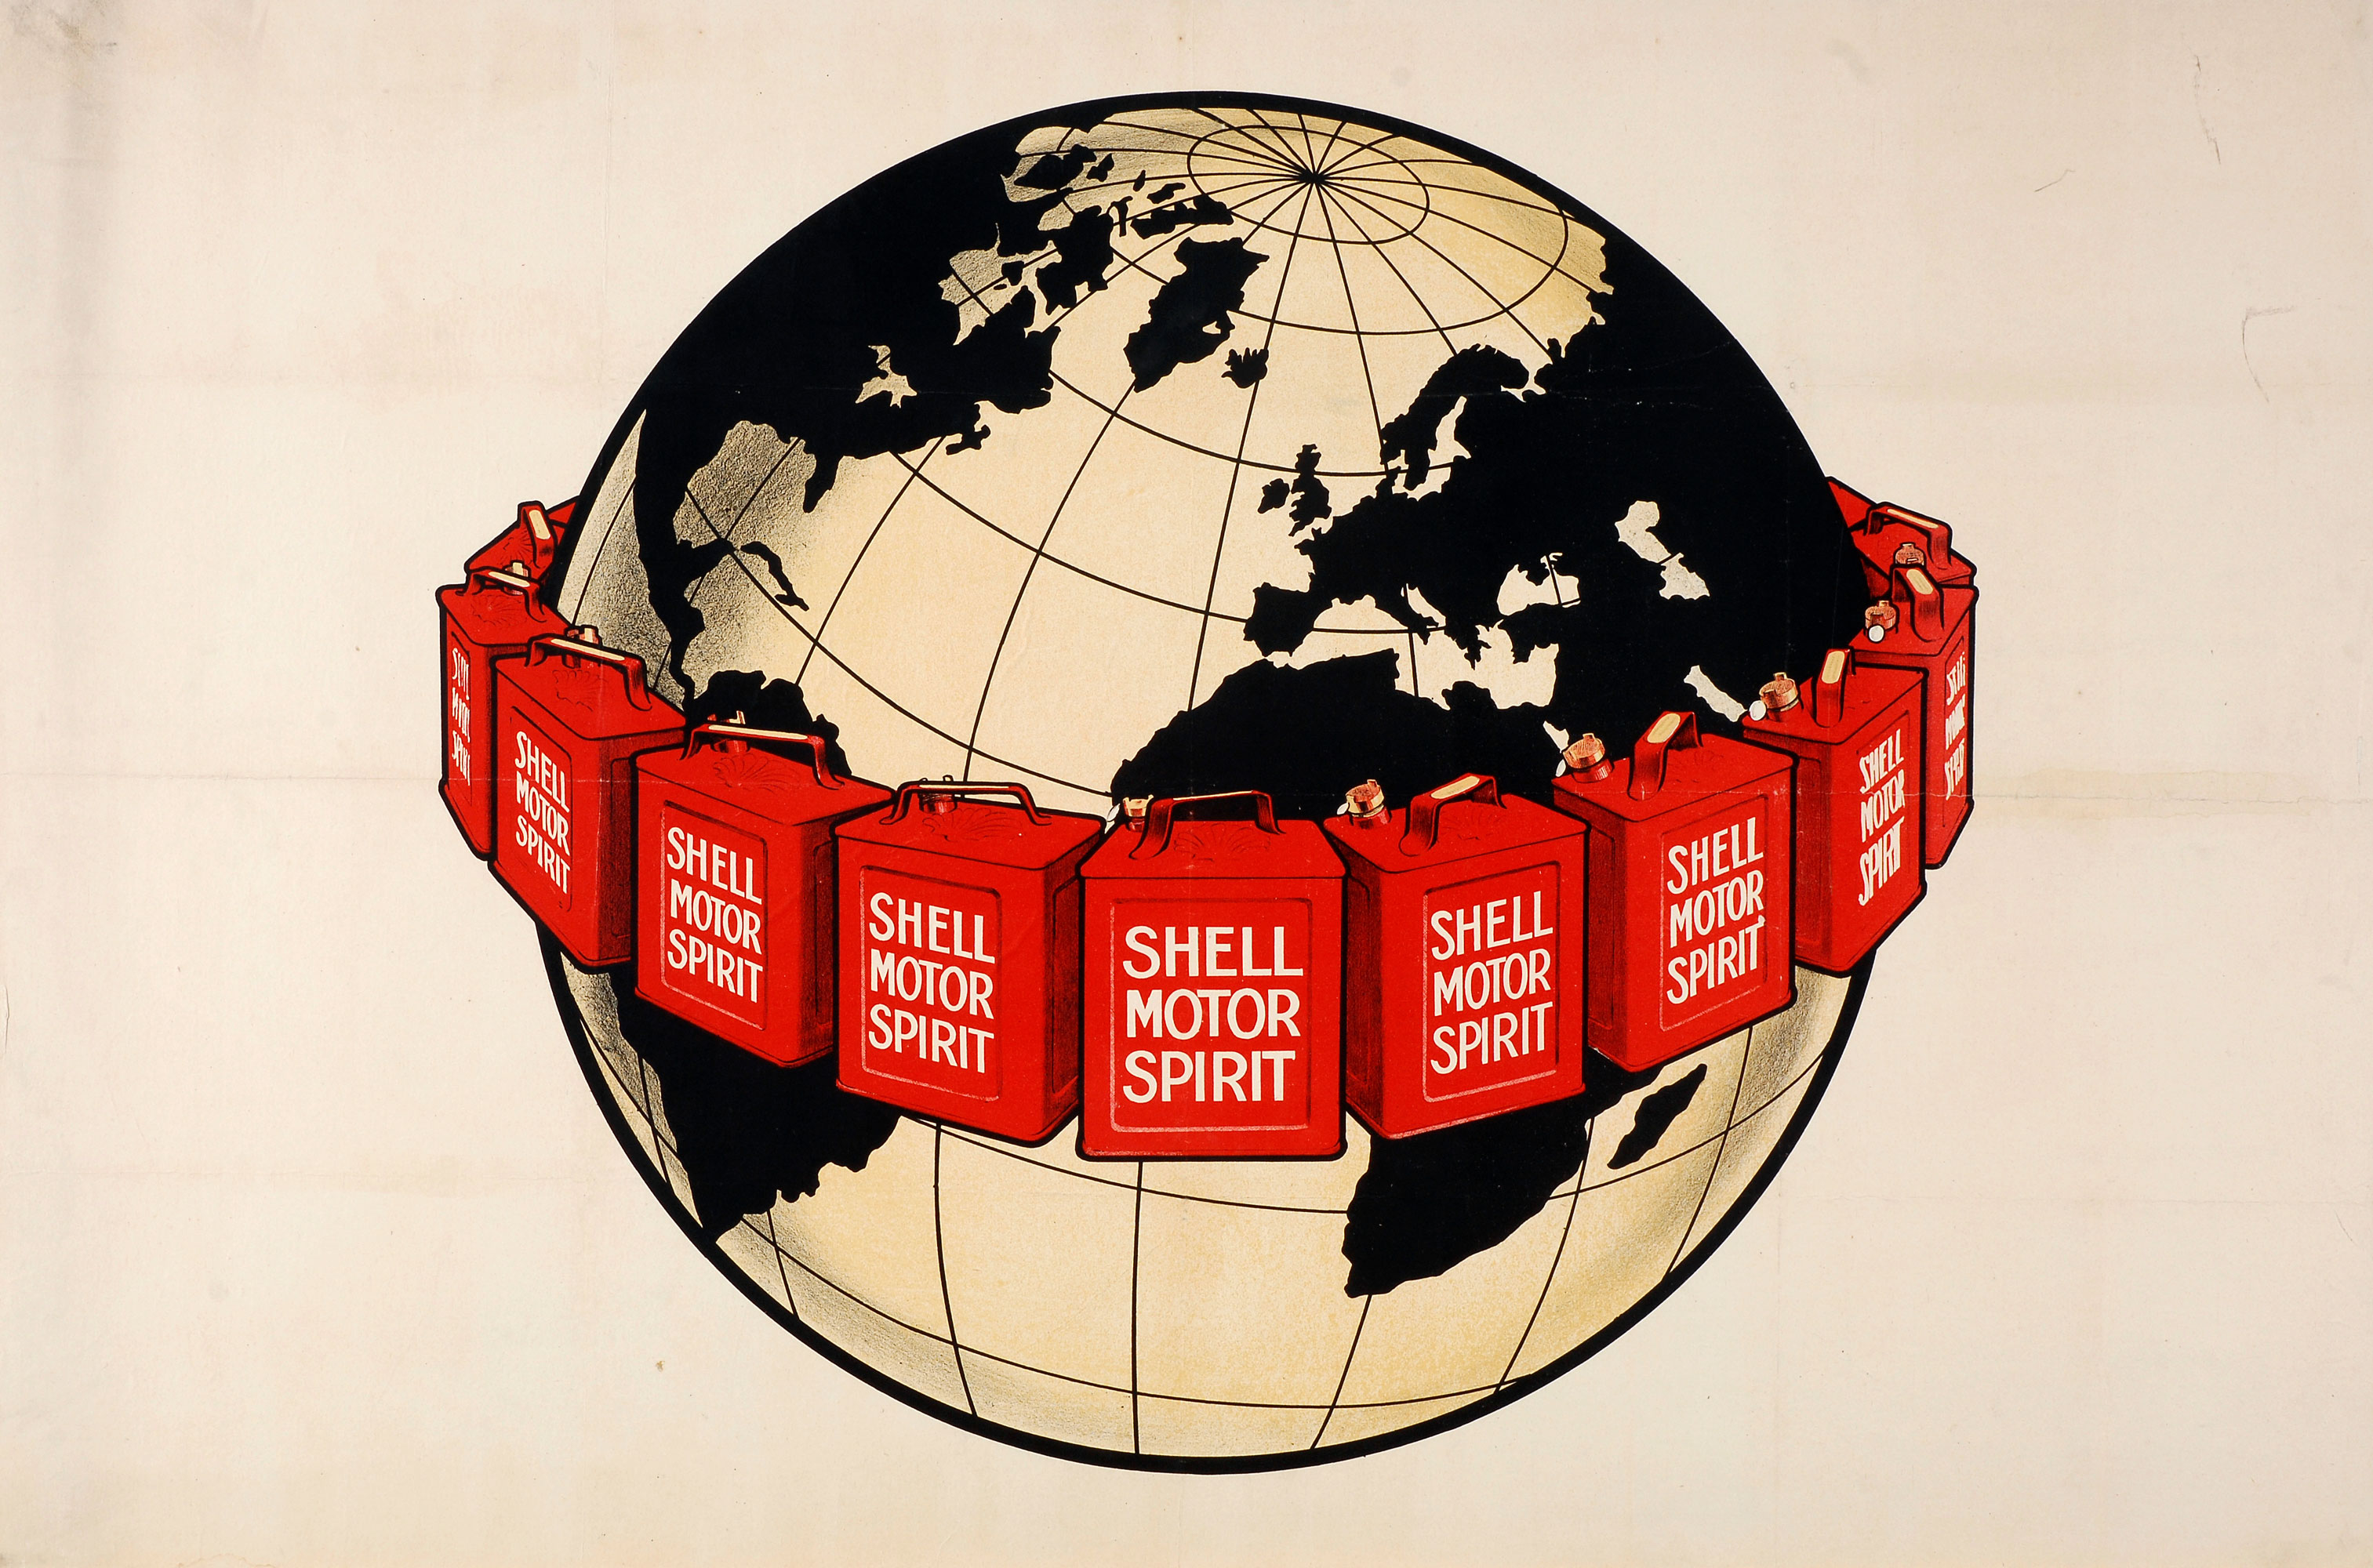 Shell poster number 57, Shell Girdles the Earth (1924), Shell Studio. Graphic of the earth with Shell Motor Spirit oil cans circling it.